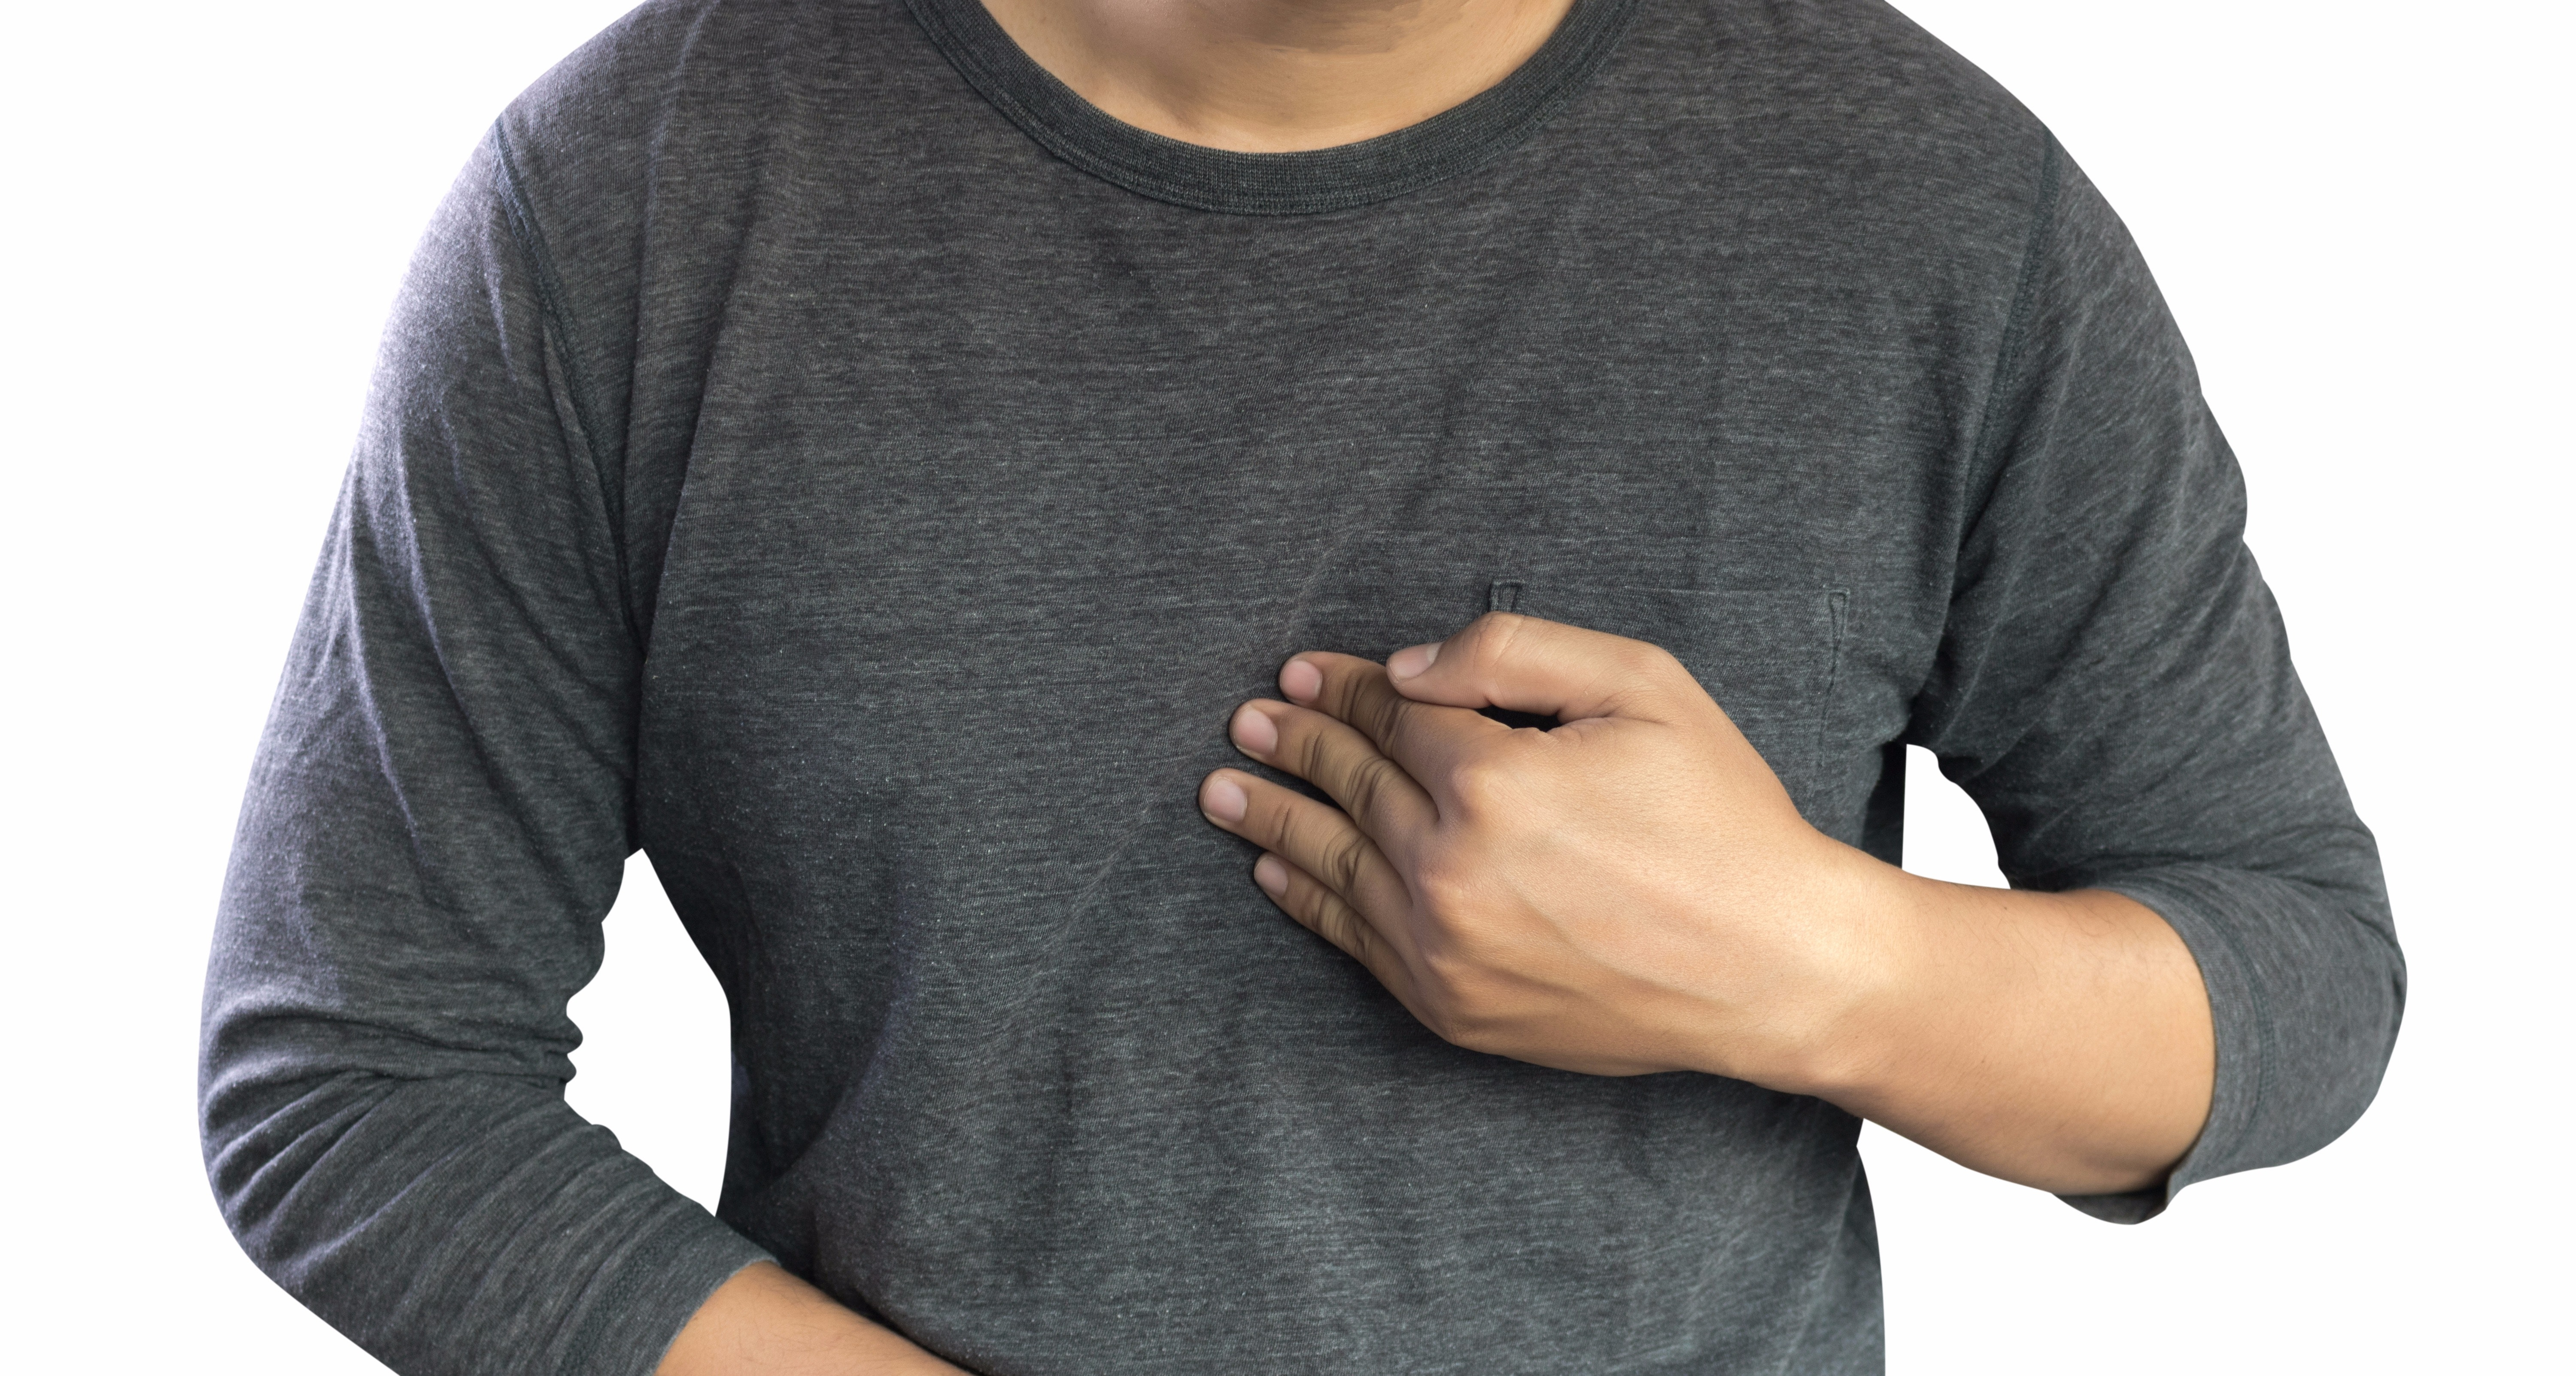 An image depicting a person suffering from acid reflux disease (gerd) symptoms